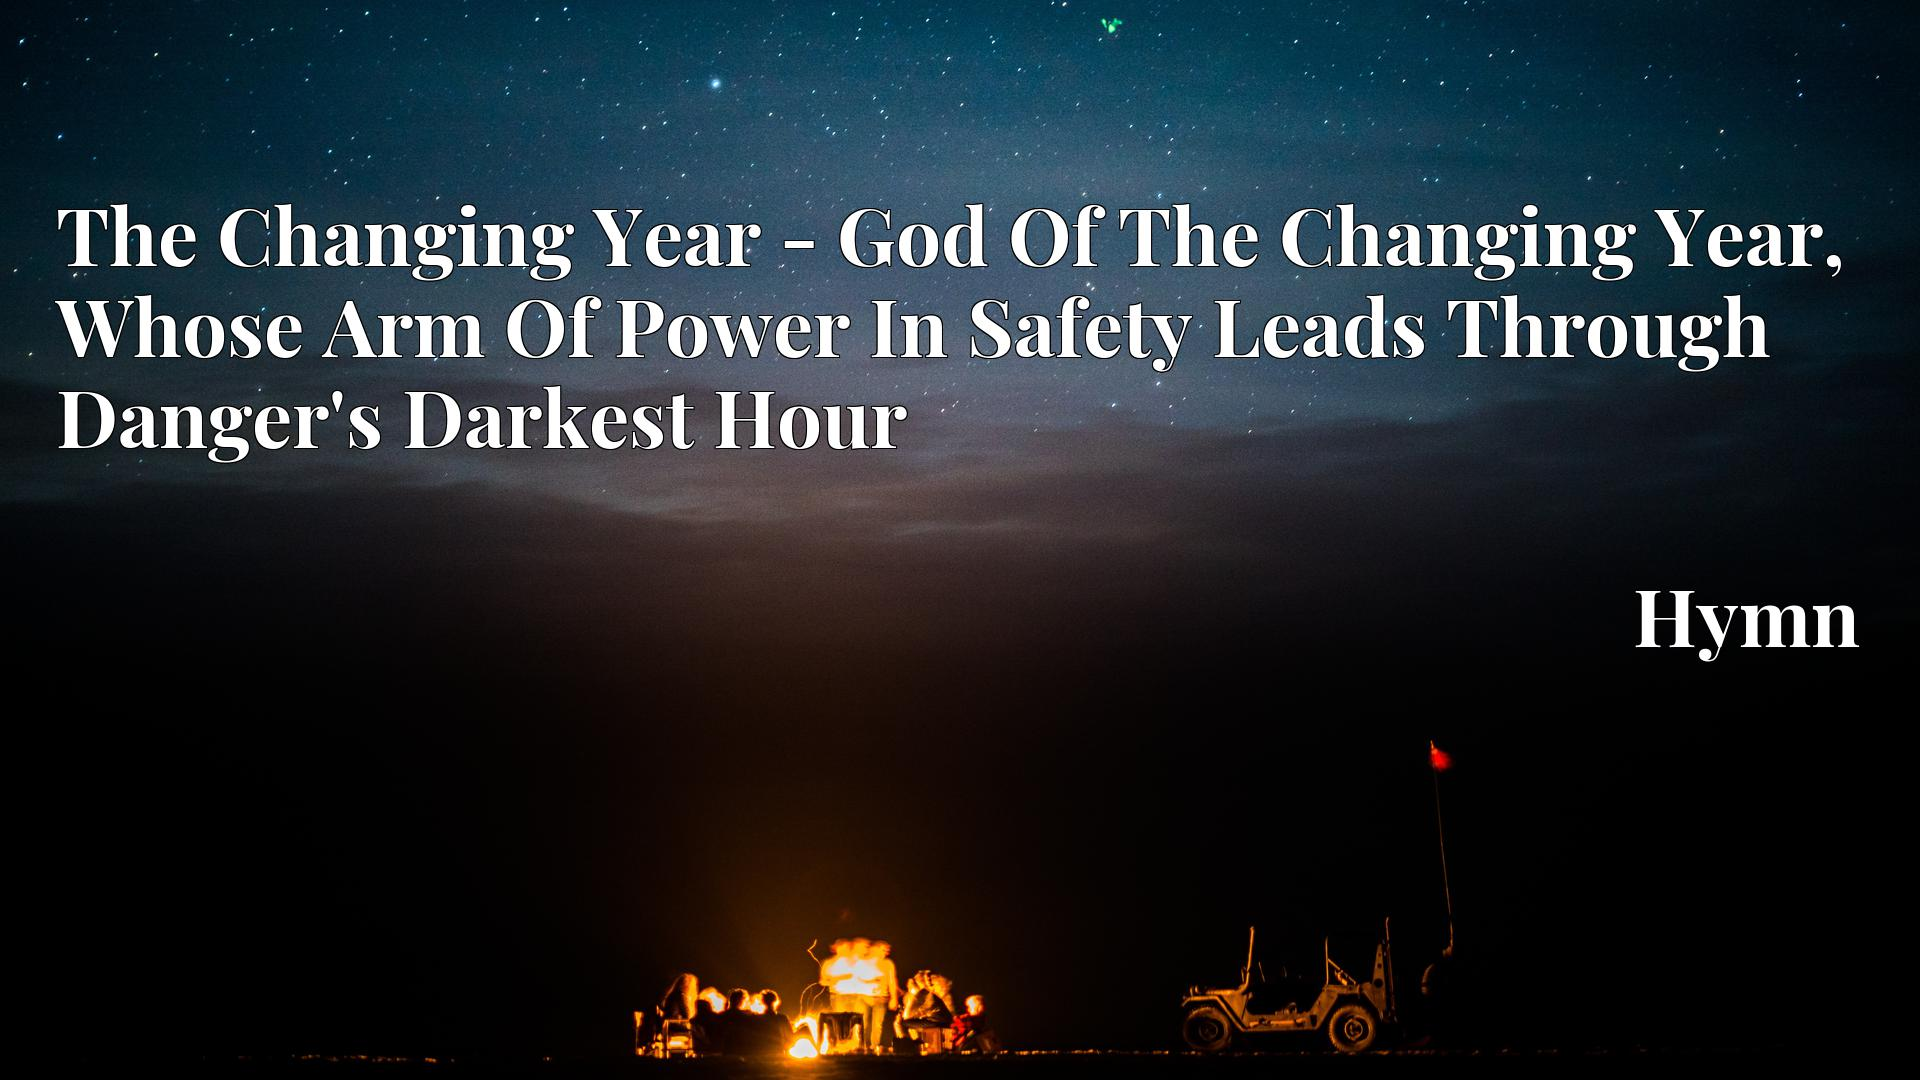 The Changing Year - God Of The Changing Year, Whose Arm Of Power In Safety Leads Through Danger's Darkest Hour - Hymn